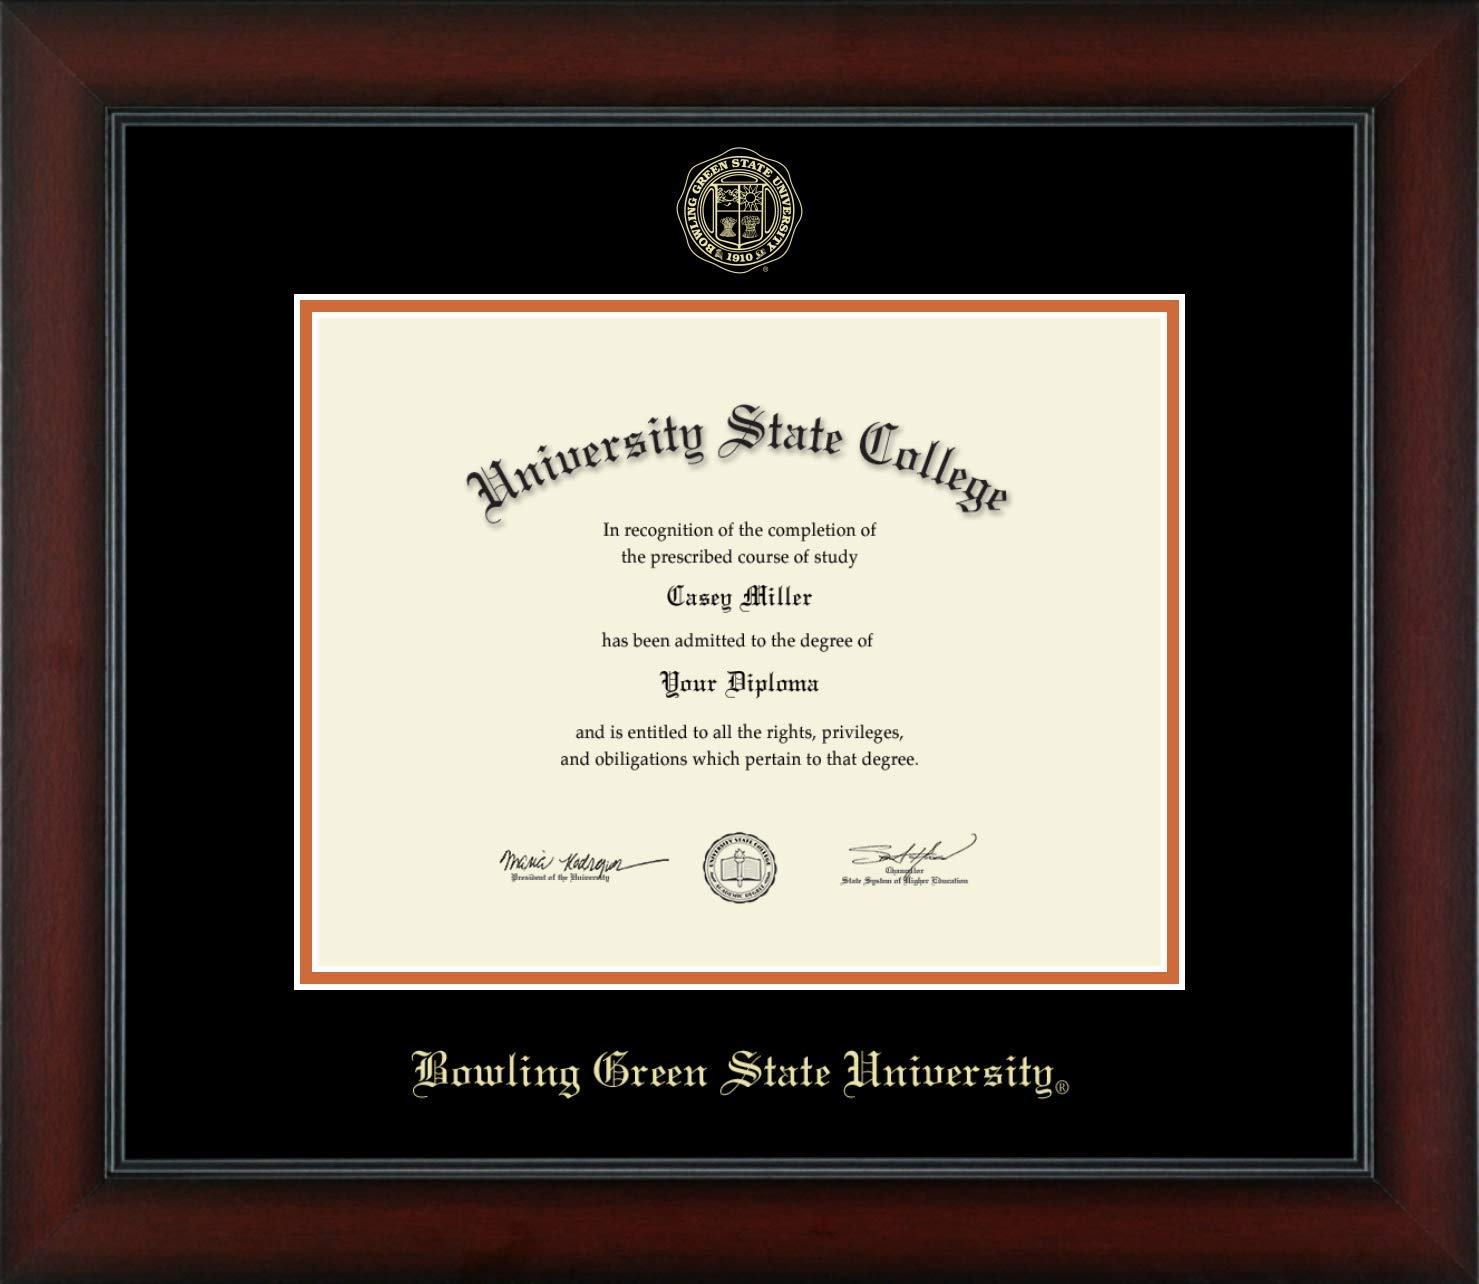 Bowling Green State University - Officially Licensed - Gold Embossed Diploma Frame - Diploma Size 11'' x 8.5''